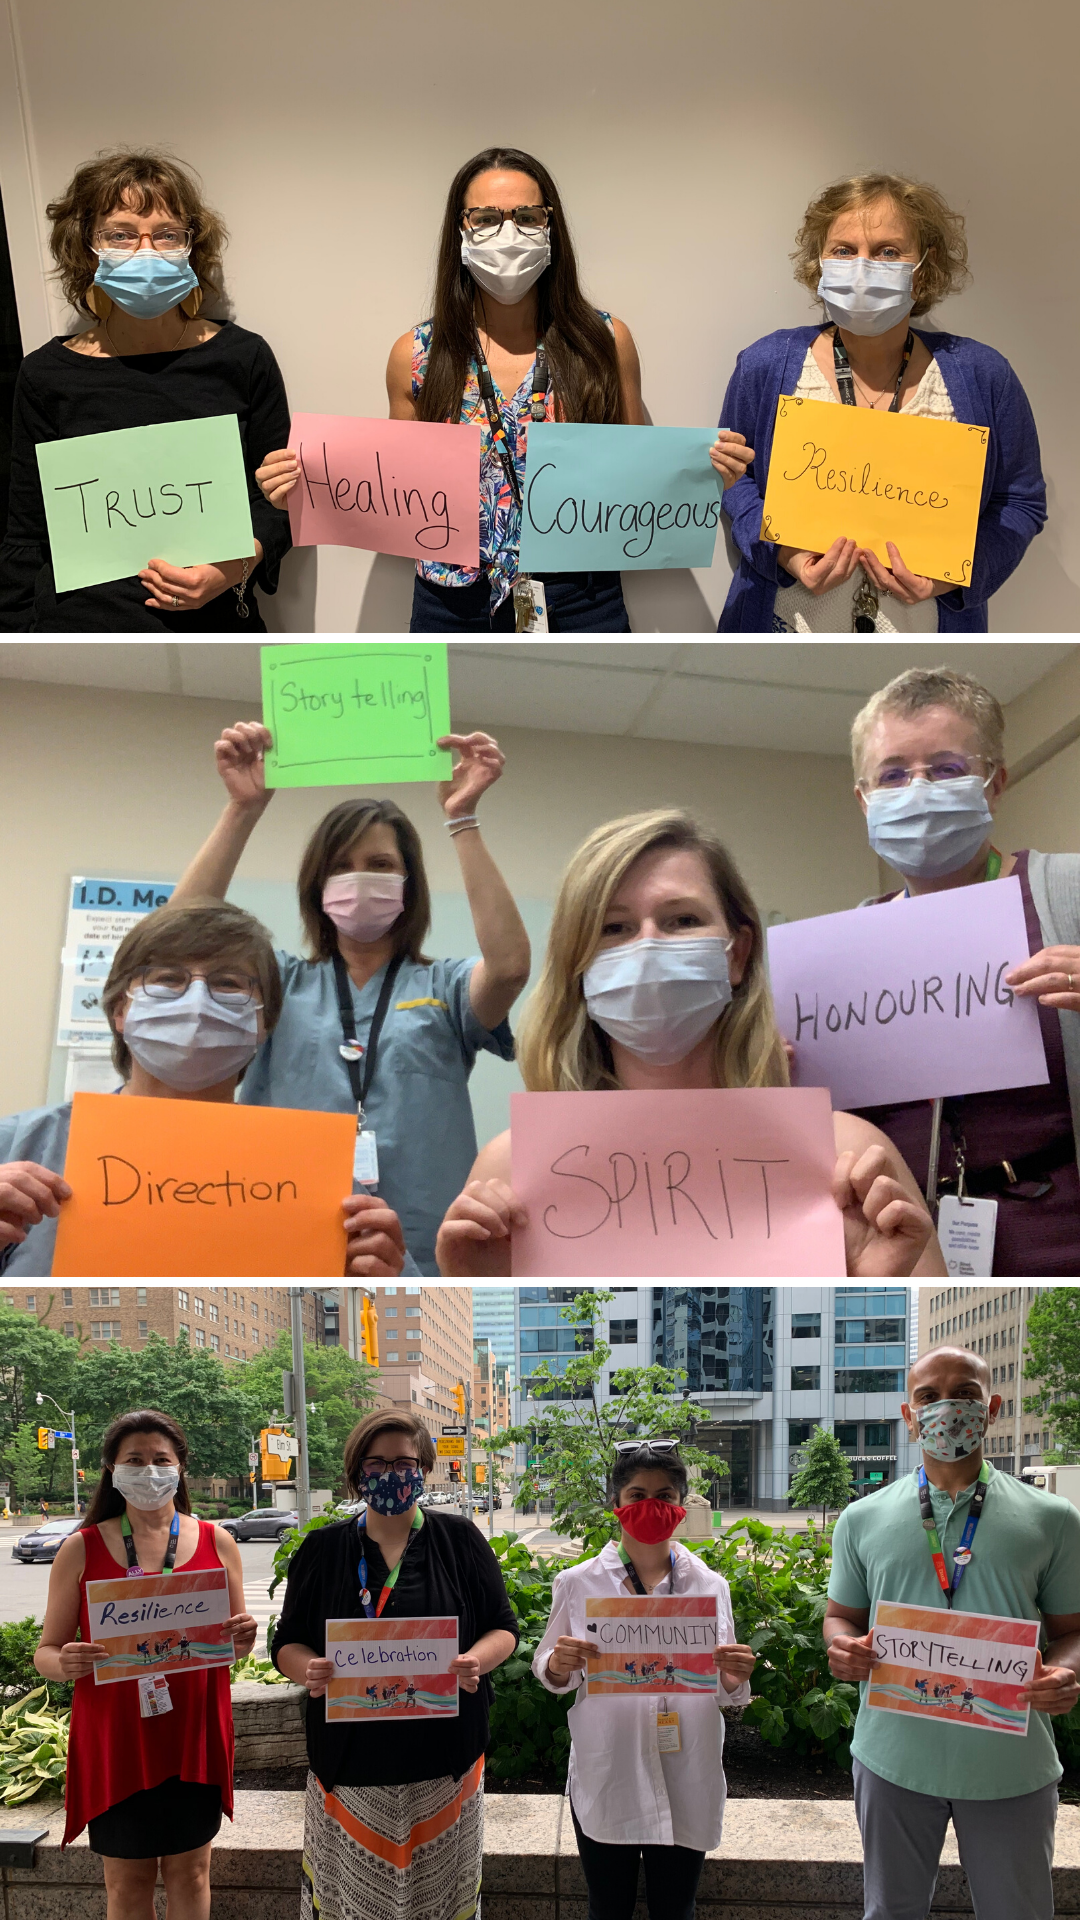 Three photos of people wearing masks holding up signs